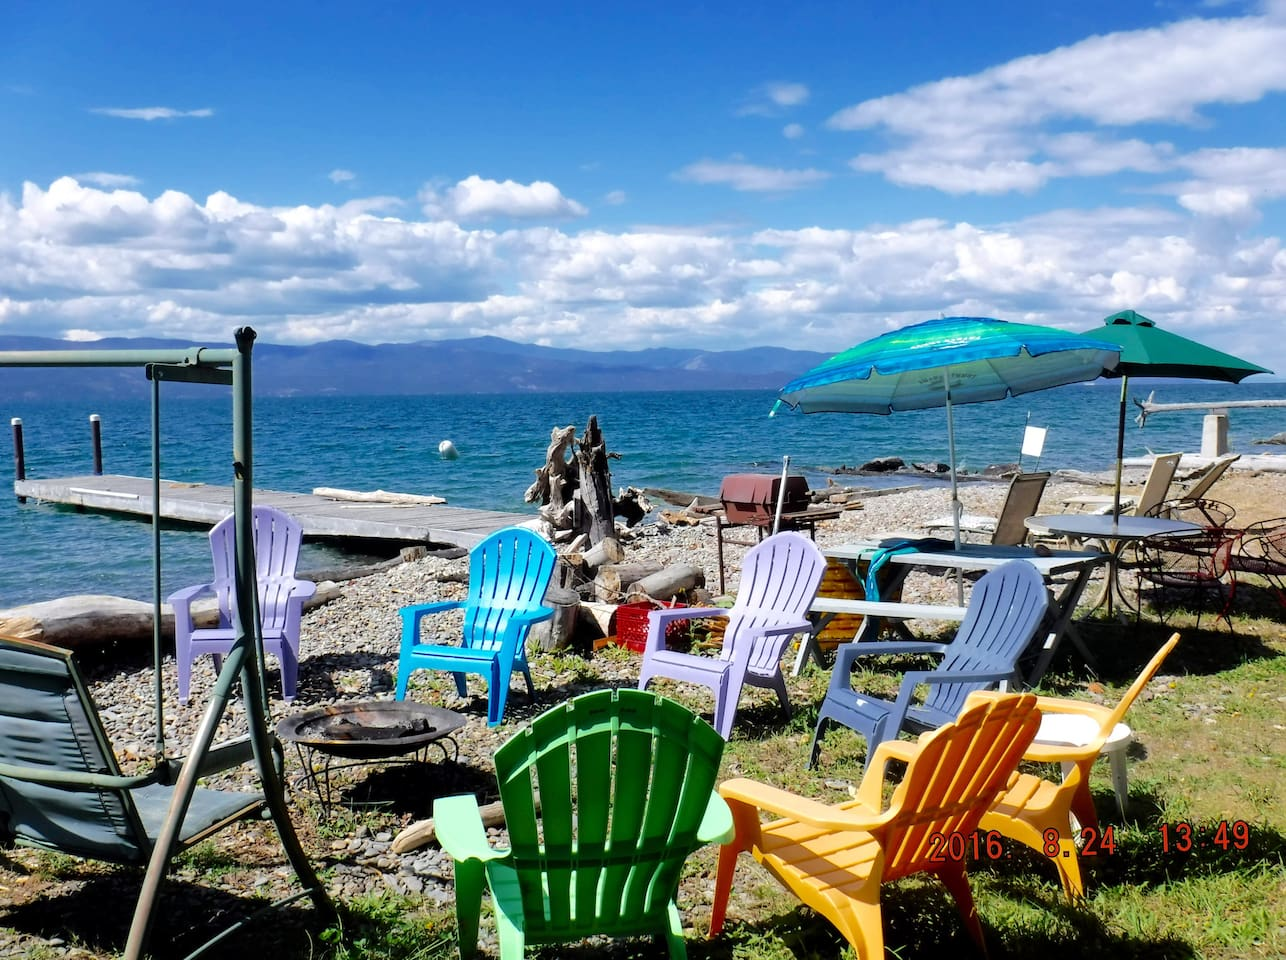 Enjoy Flathead Lake on your own private beach with dock and boat ramp.